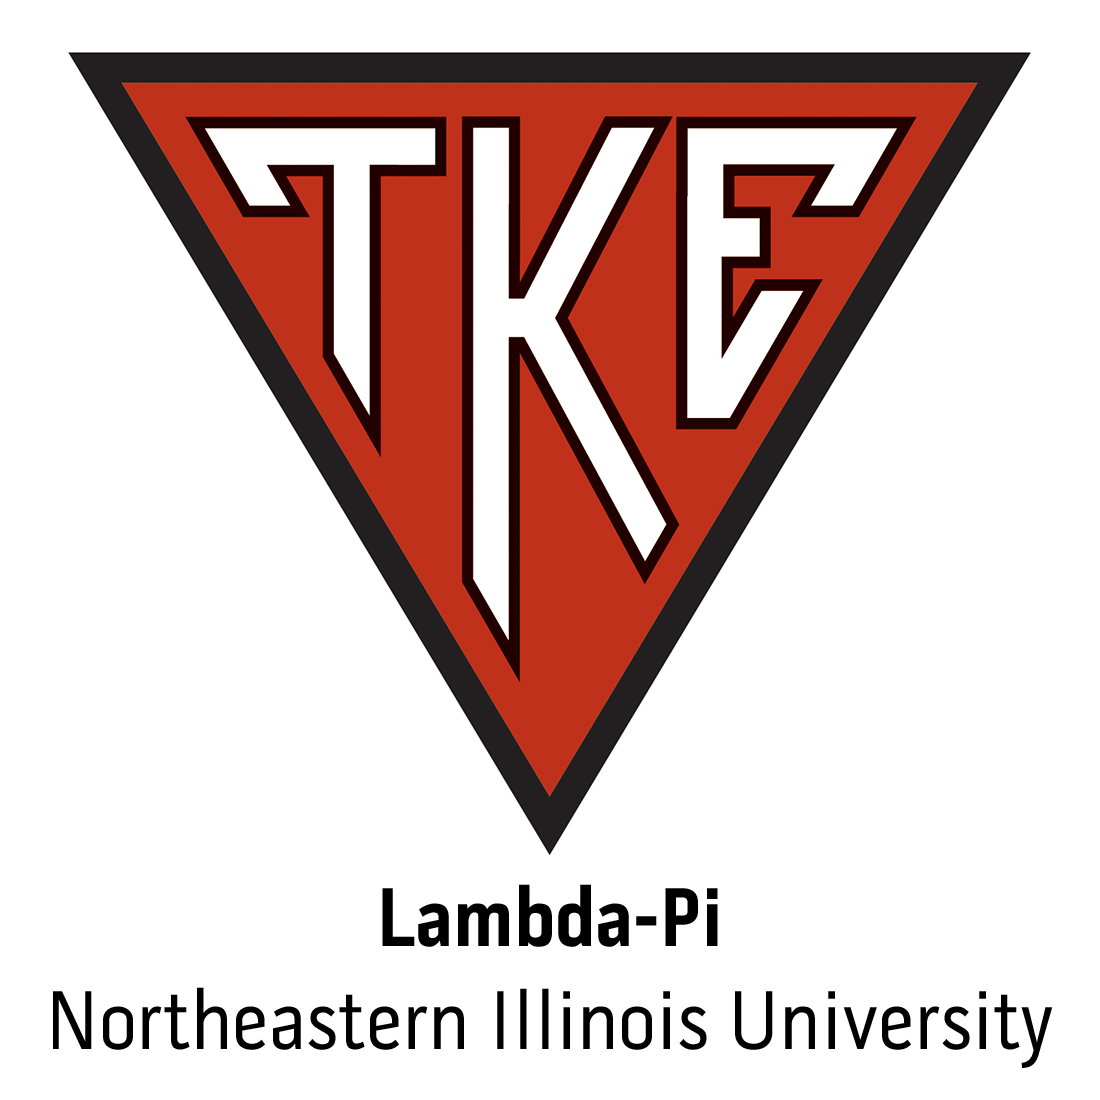 Lambda-Pi Chapter at Northeastern Illinois University